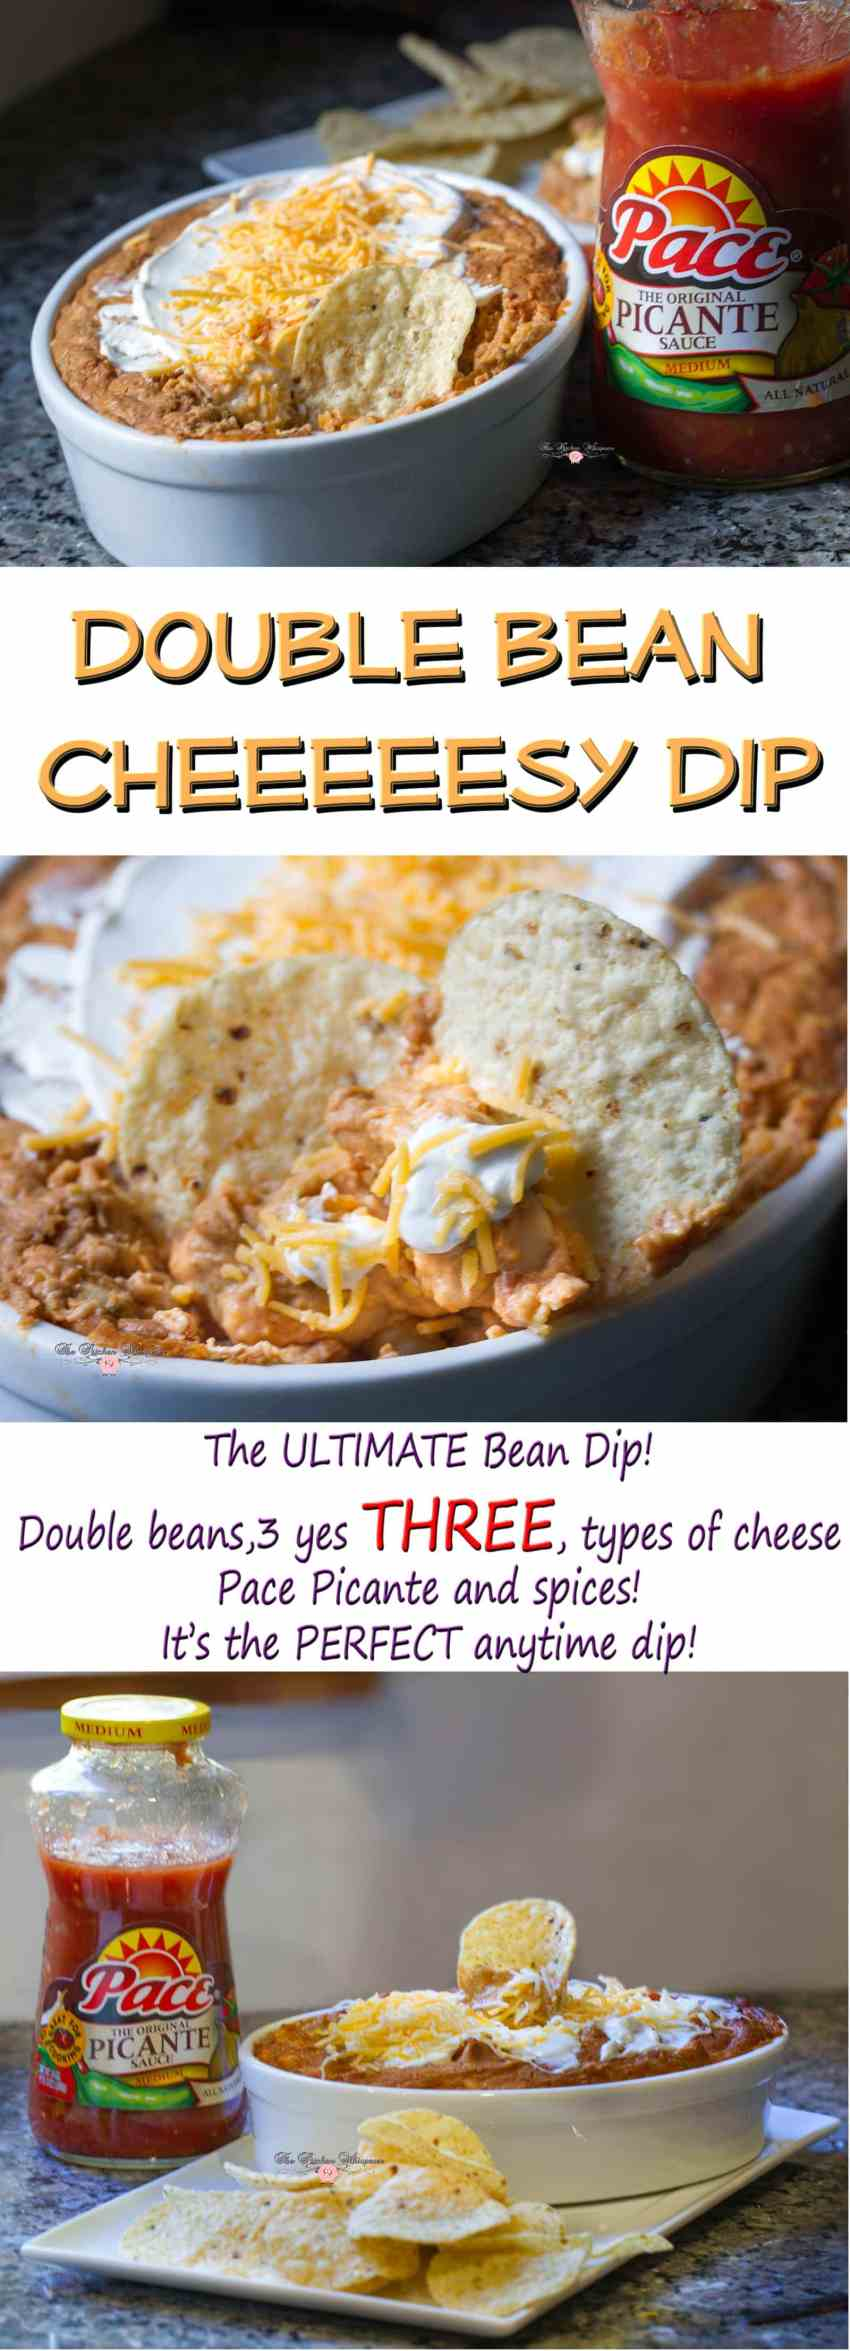 double-bean-cheeesy-dip-collage1